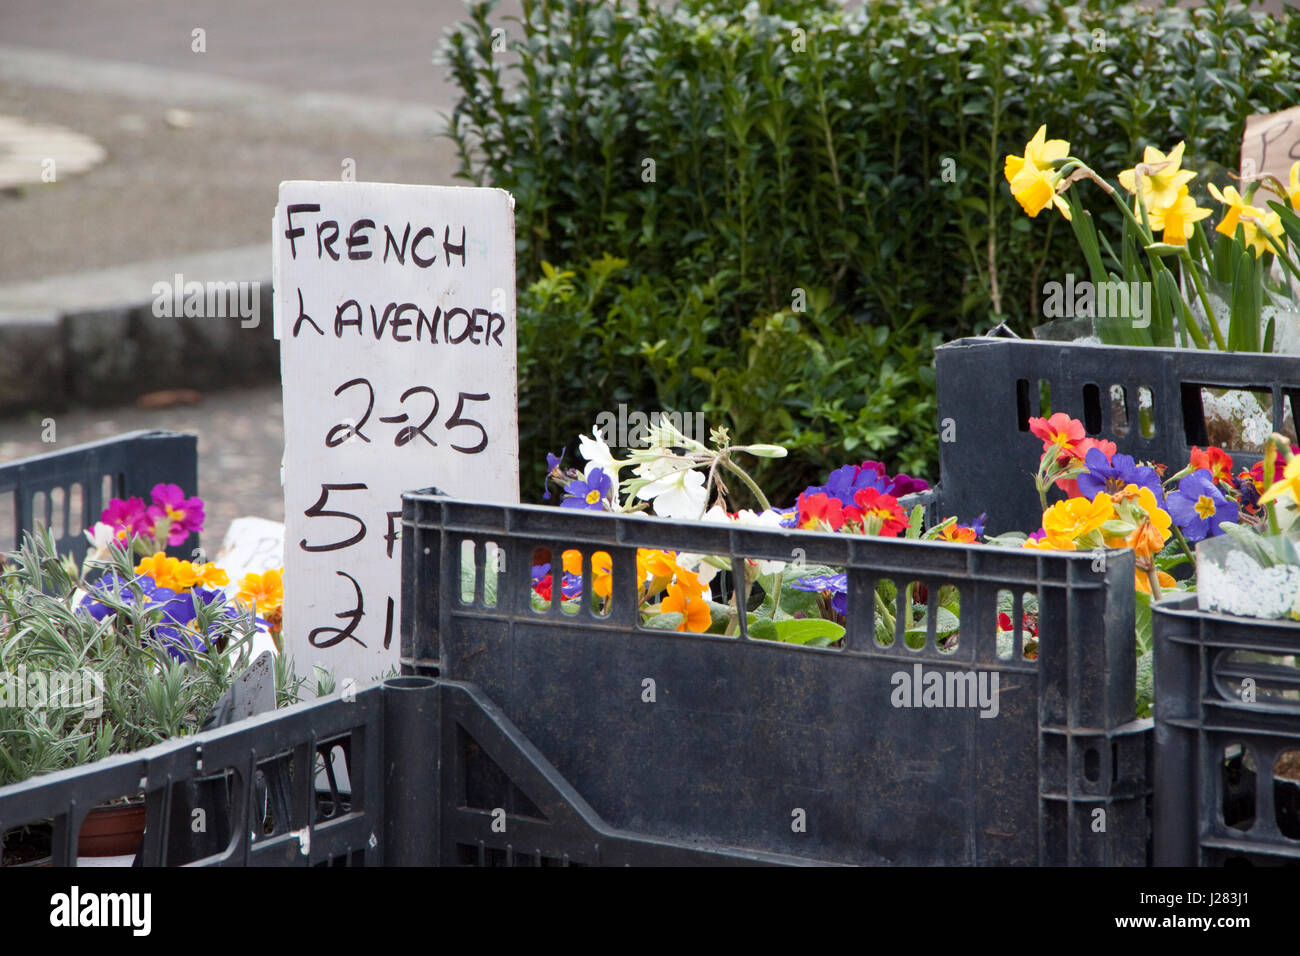 Flowers in plastic crates for sale on a street market - Stock Image